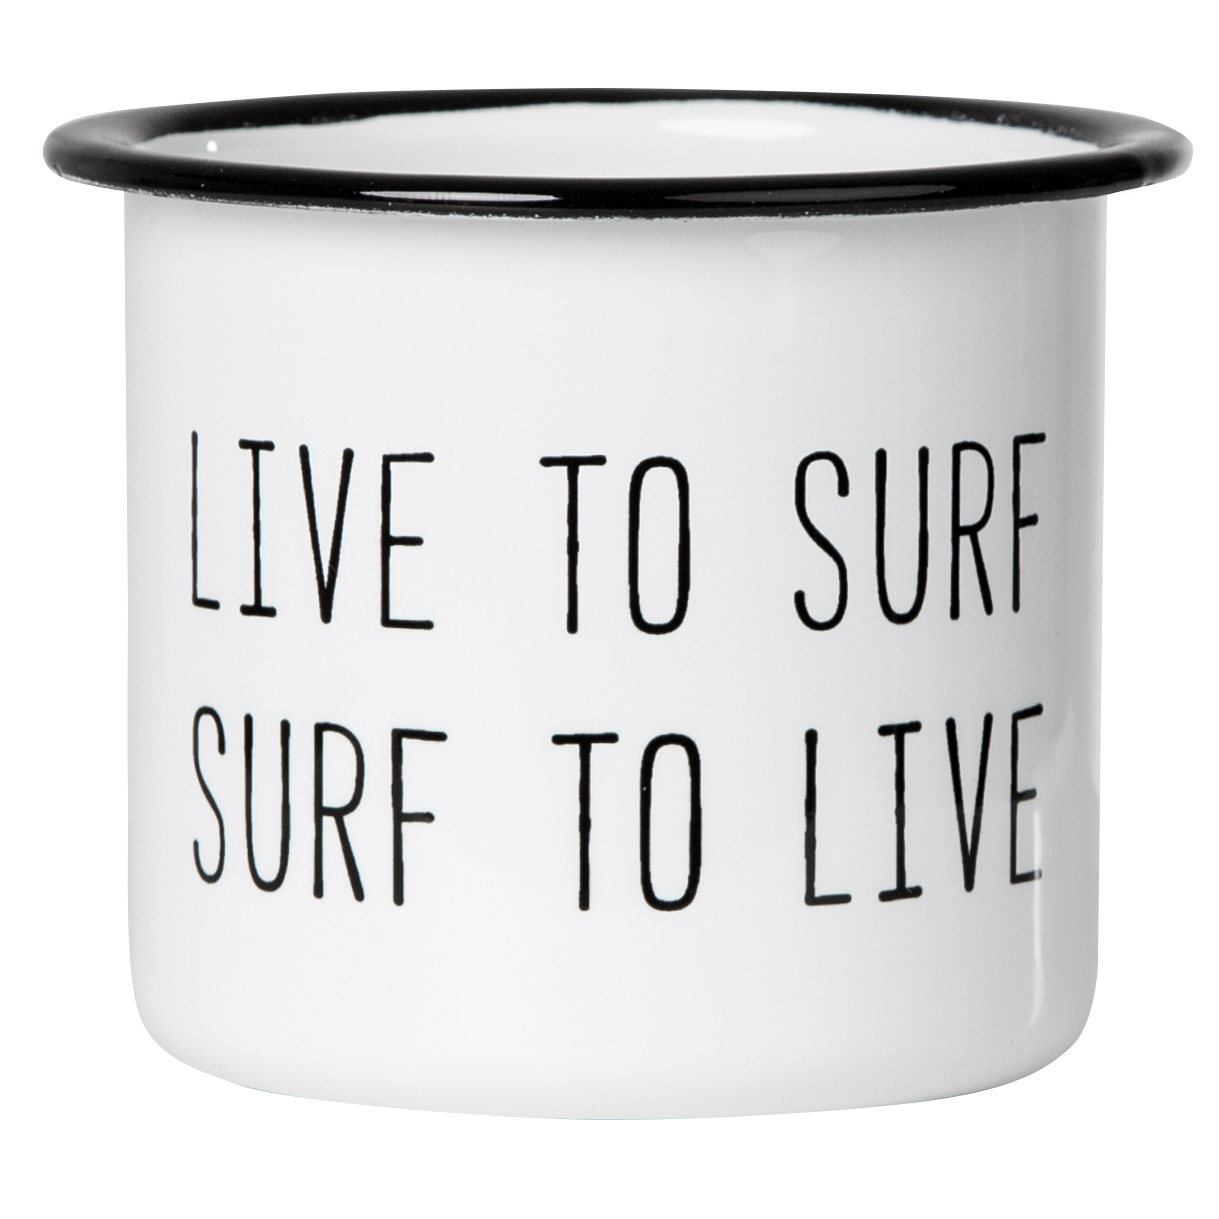 LIVE TO SURF